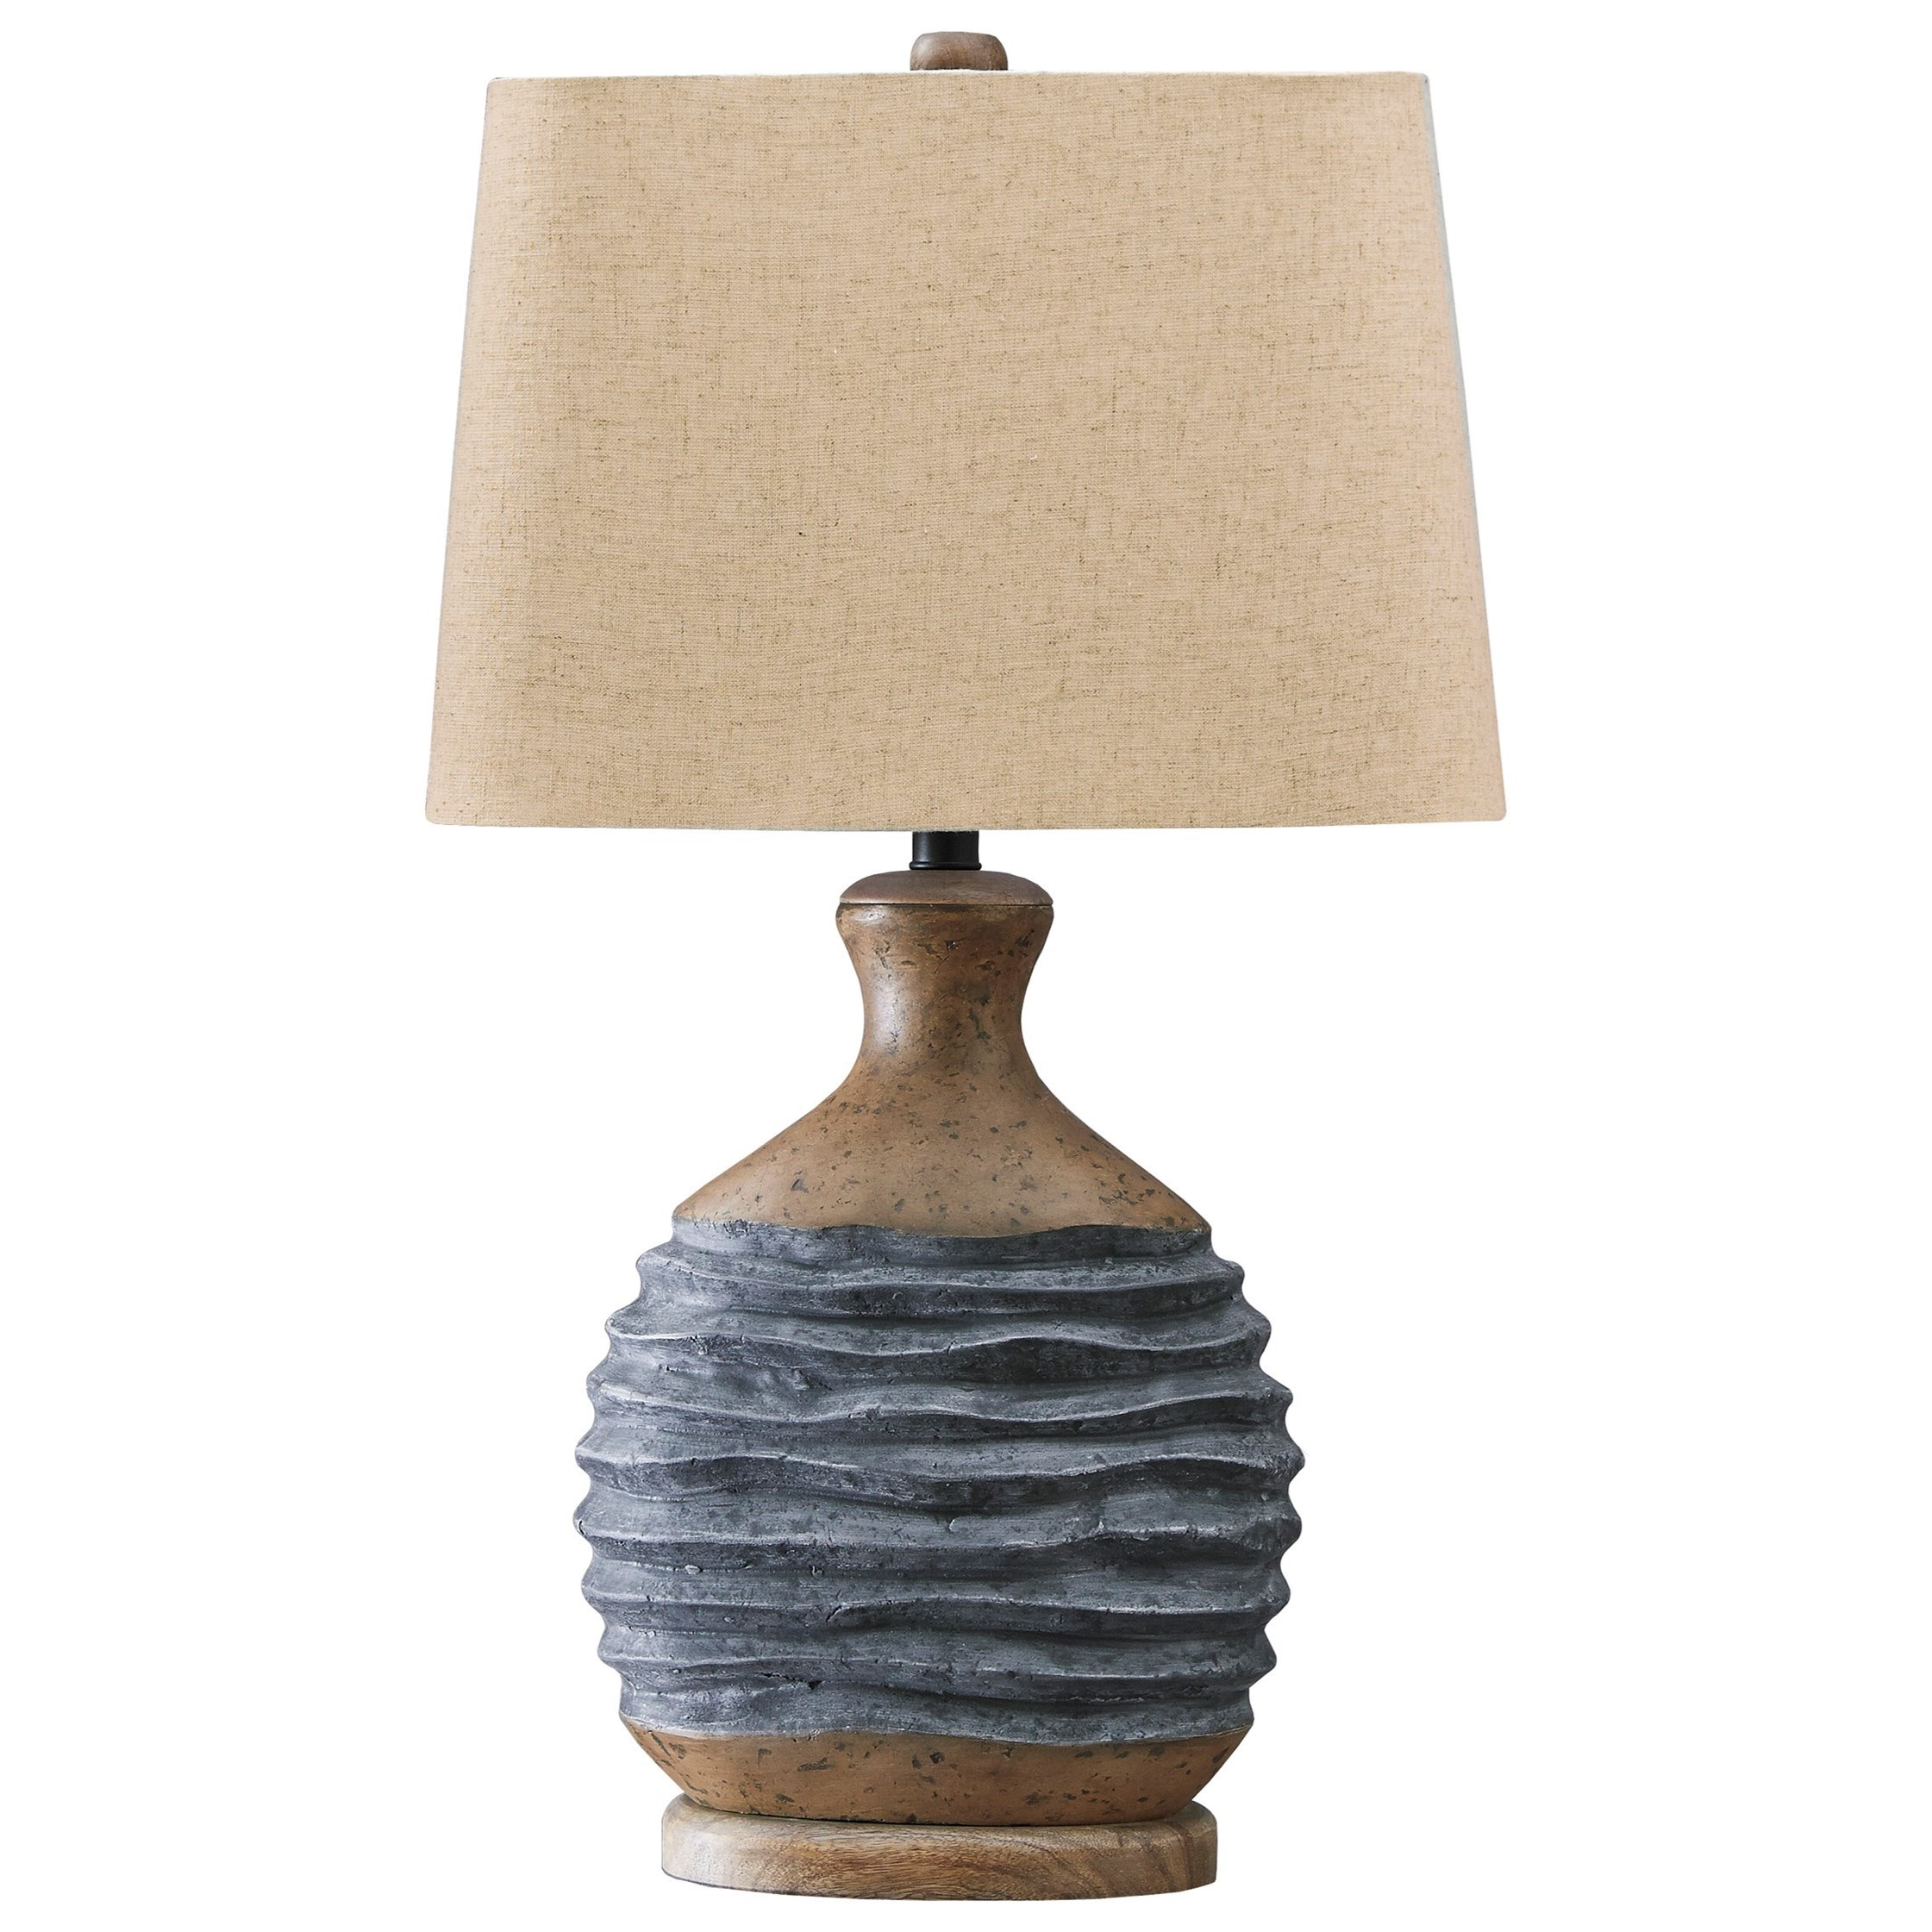 Lamps - Casual Medlin Gray/Beige Paper Table Lamp by Ashley (Signature Design) at Johnny Janosik